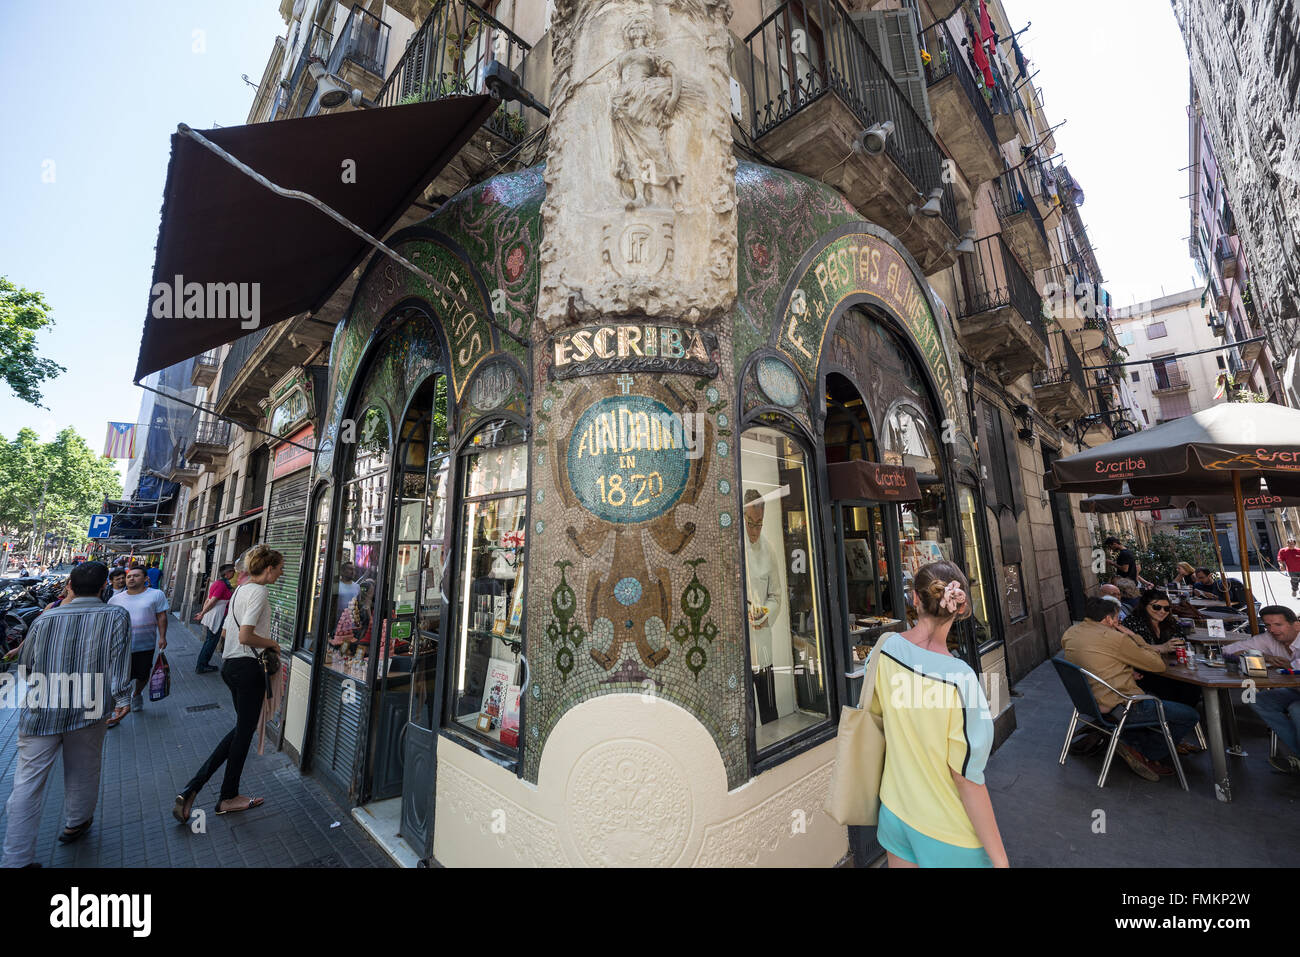 Escriba confectionery in Antigua Casa Figueras at La Rambla street in Barcelona, Spain - Stock Image